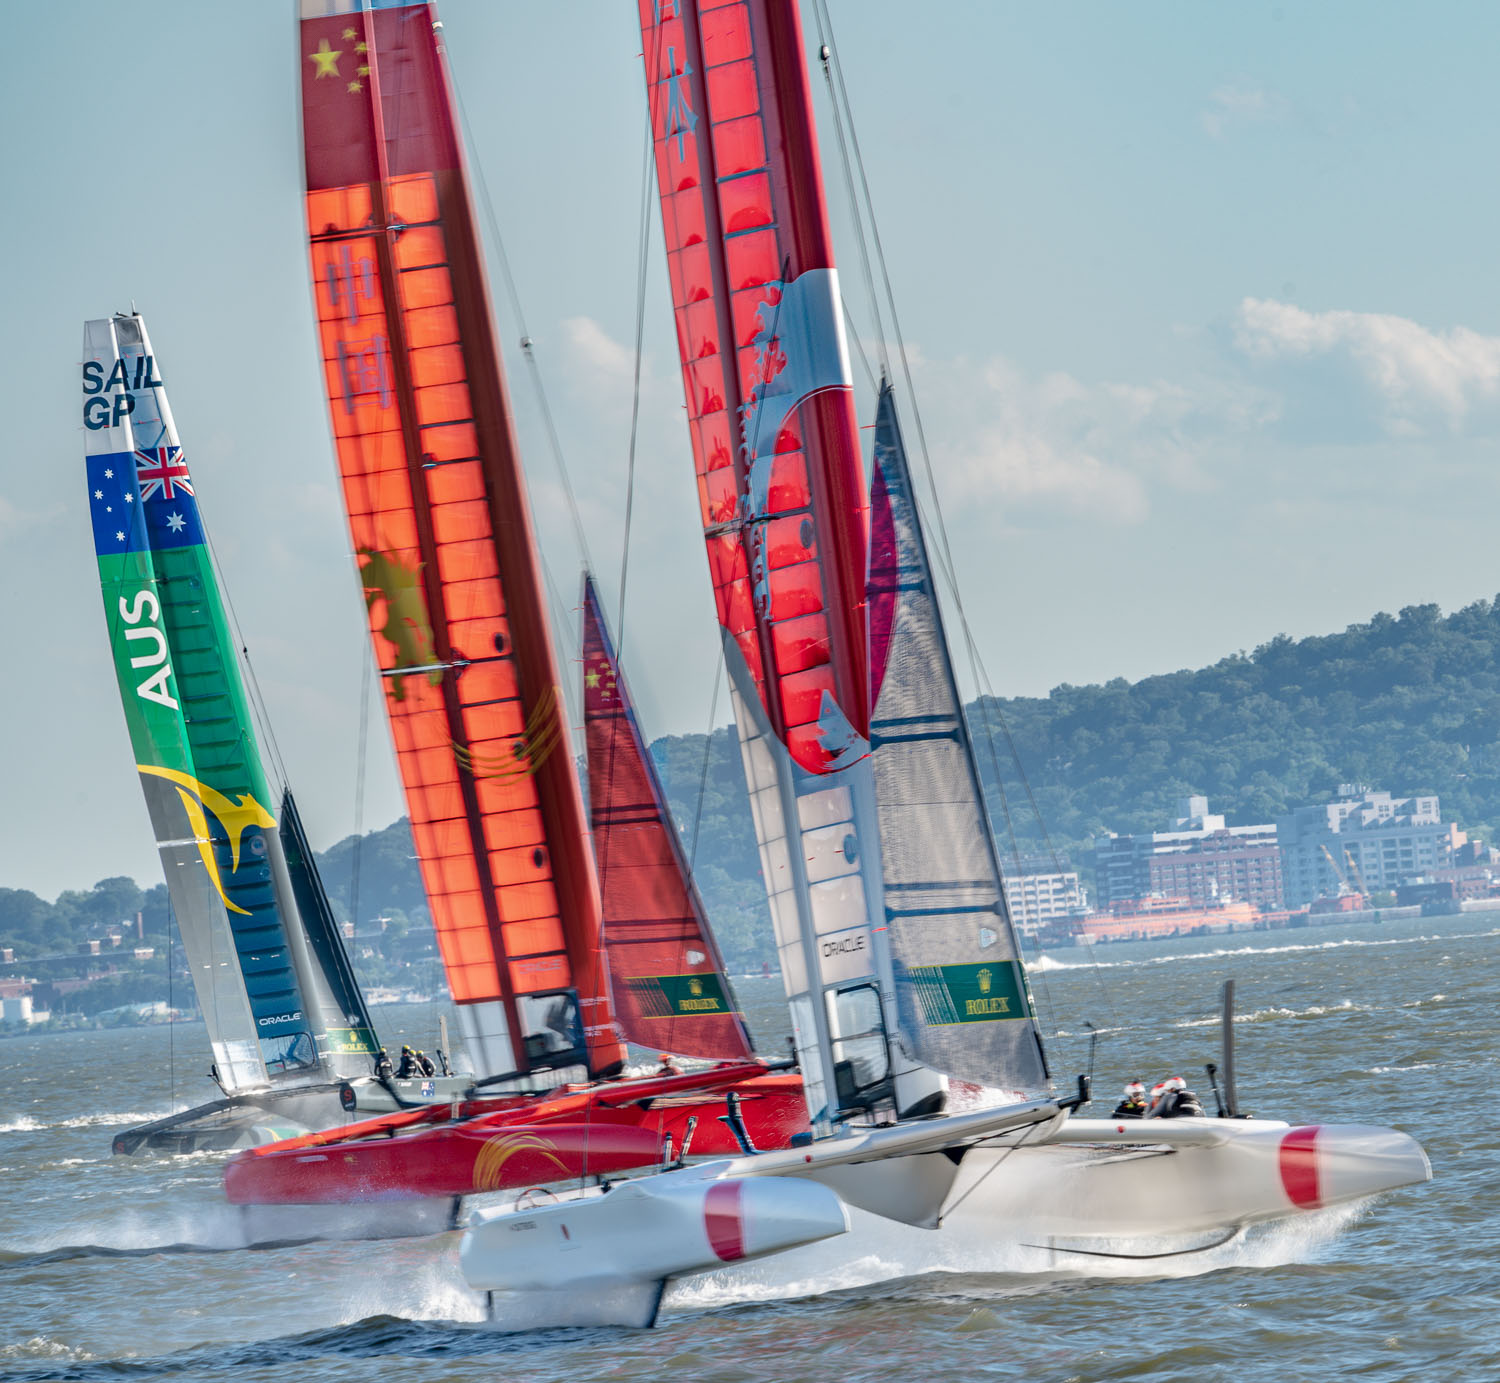 Battling for the lead in the Sail GP race on the Hudson.,  the cats are all riding on hydrofoils..jpg